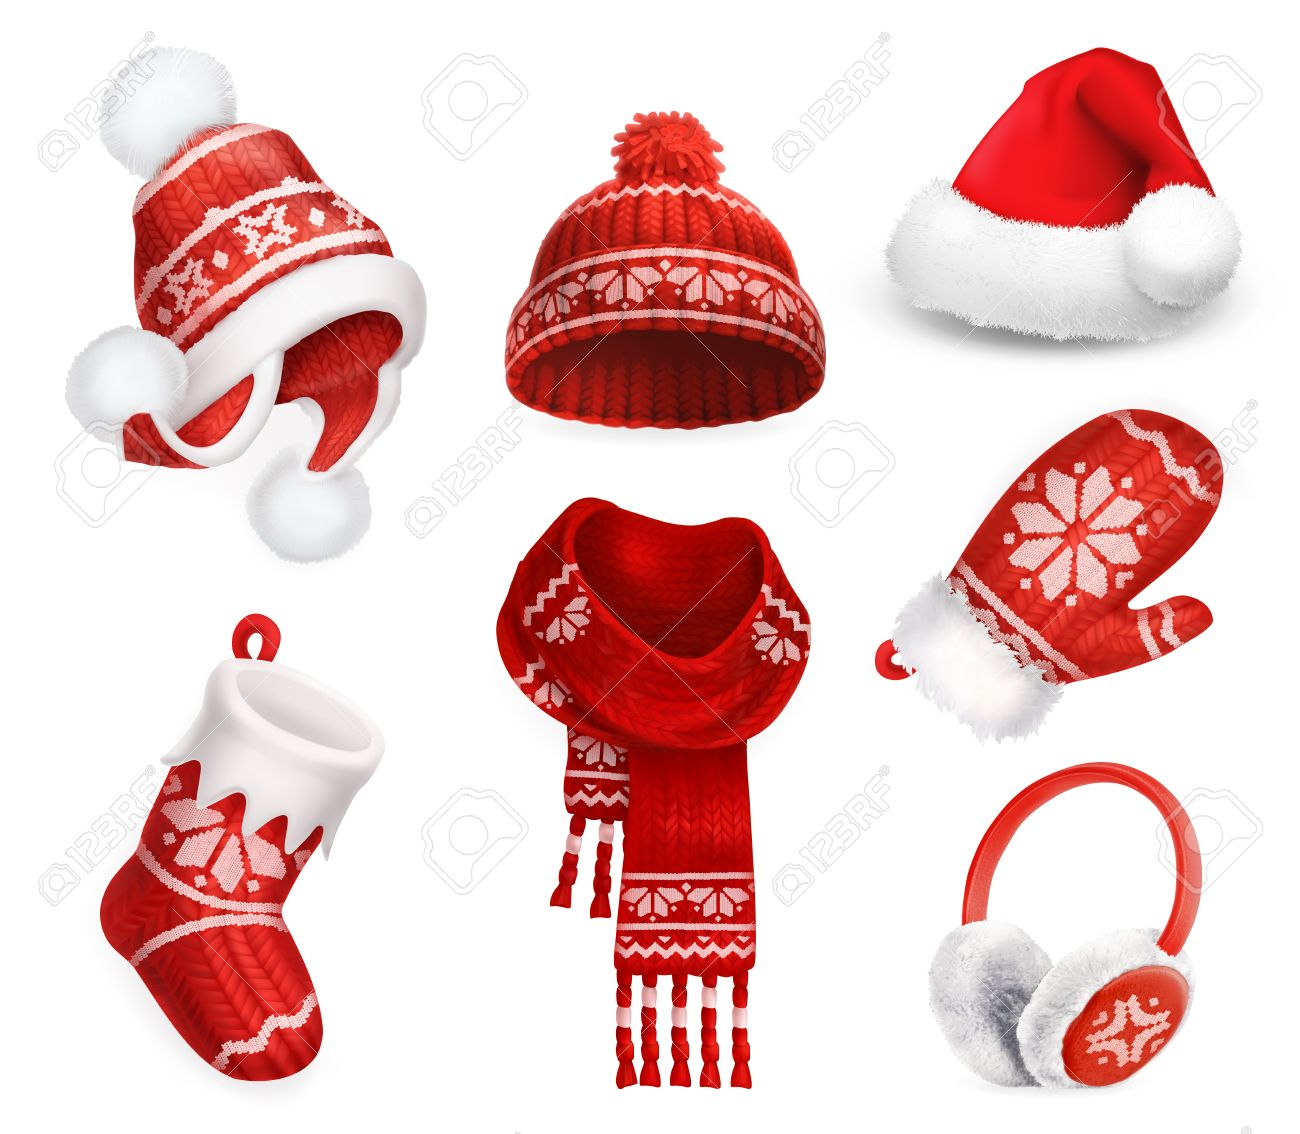 b8ae5a20ec0d8 Winter Clothes. Santa Stocking Cap. Knitted Hat. Christmas Sock ...